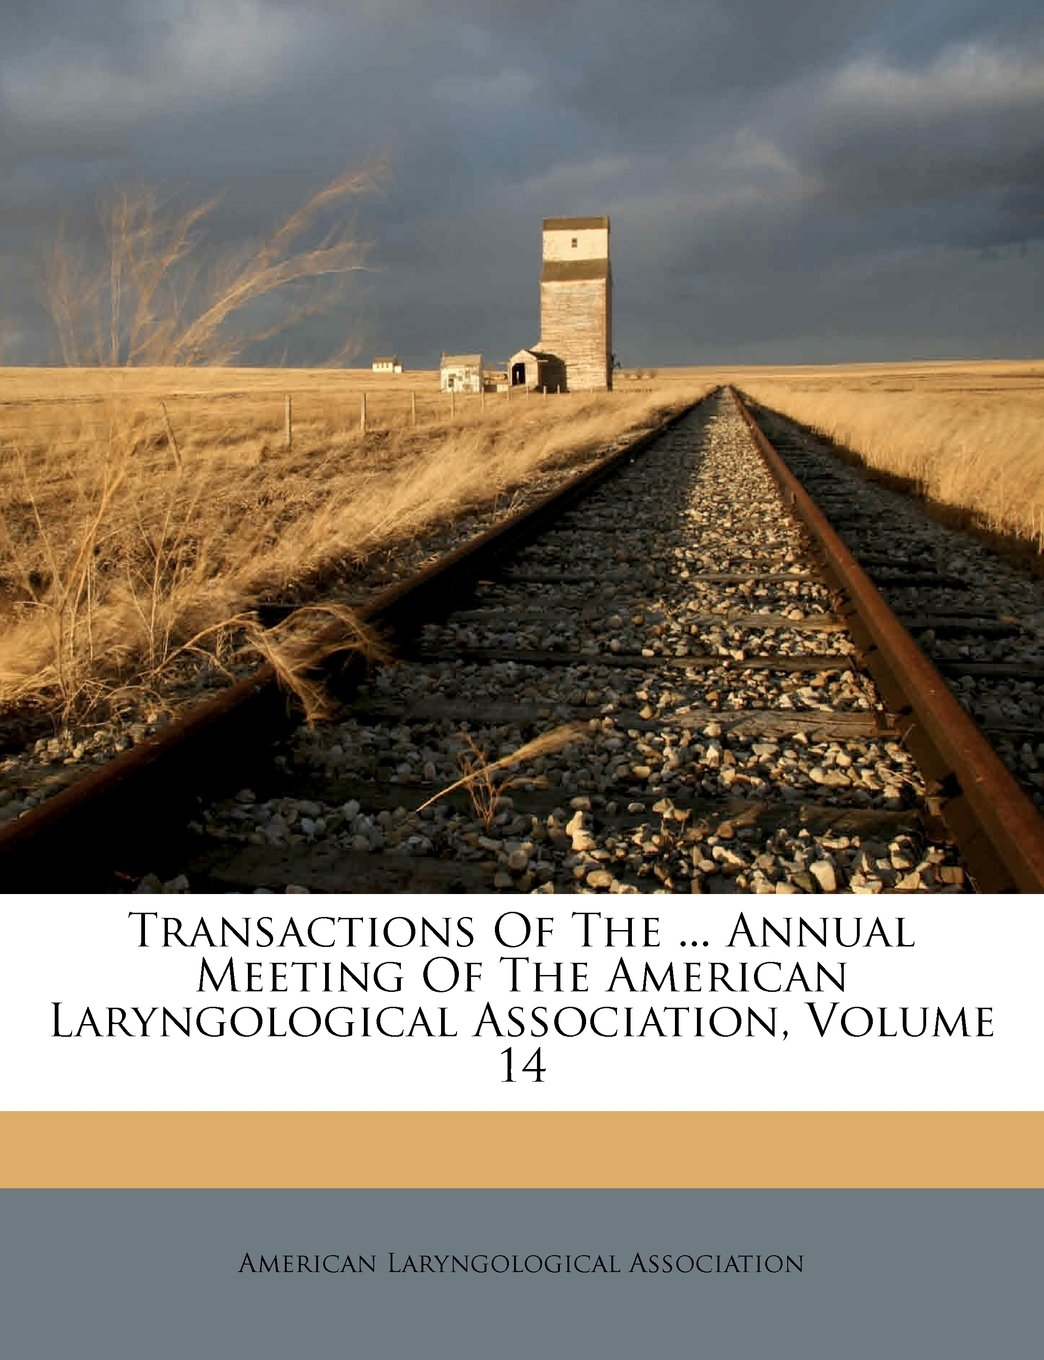 Transactions Of The ... Annual Meeting Of The American Laryngological Association, Volume 14 ebook